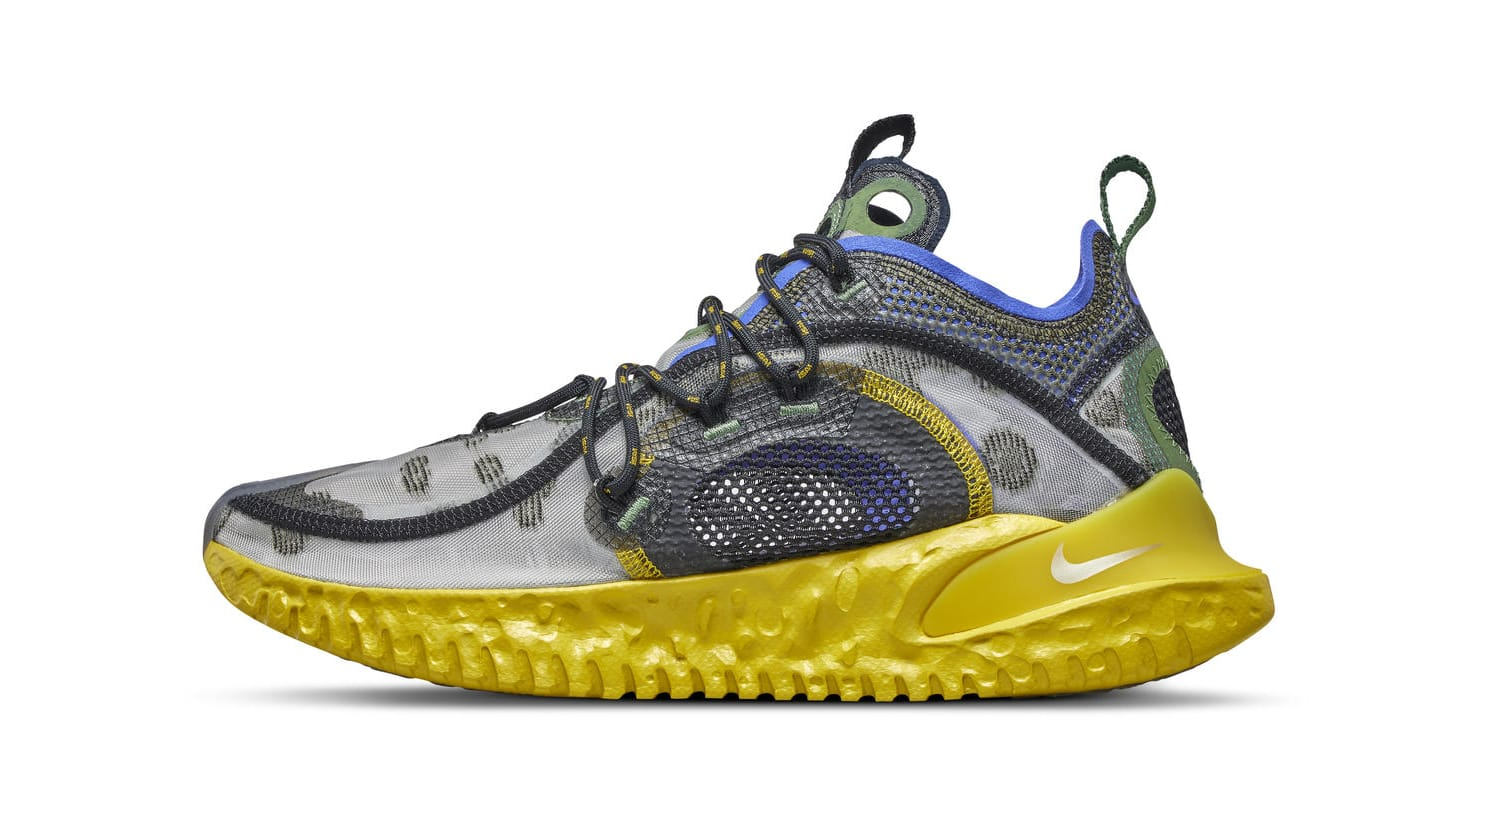 Nike ISPA Flow 2020 Lateral